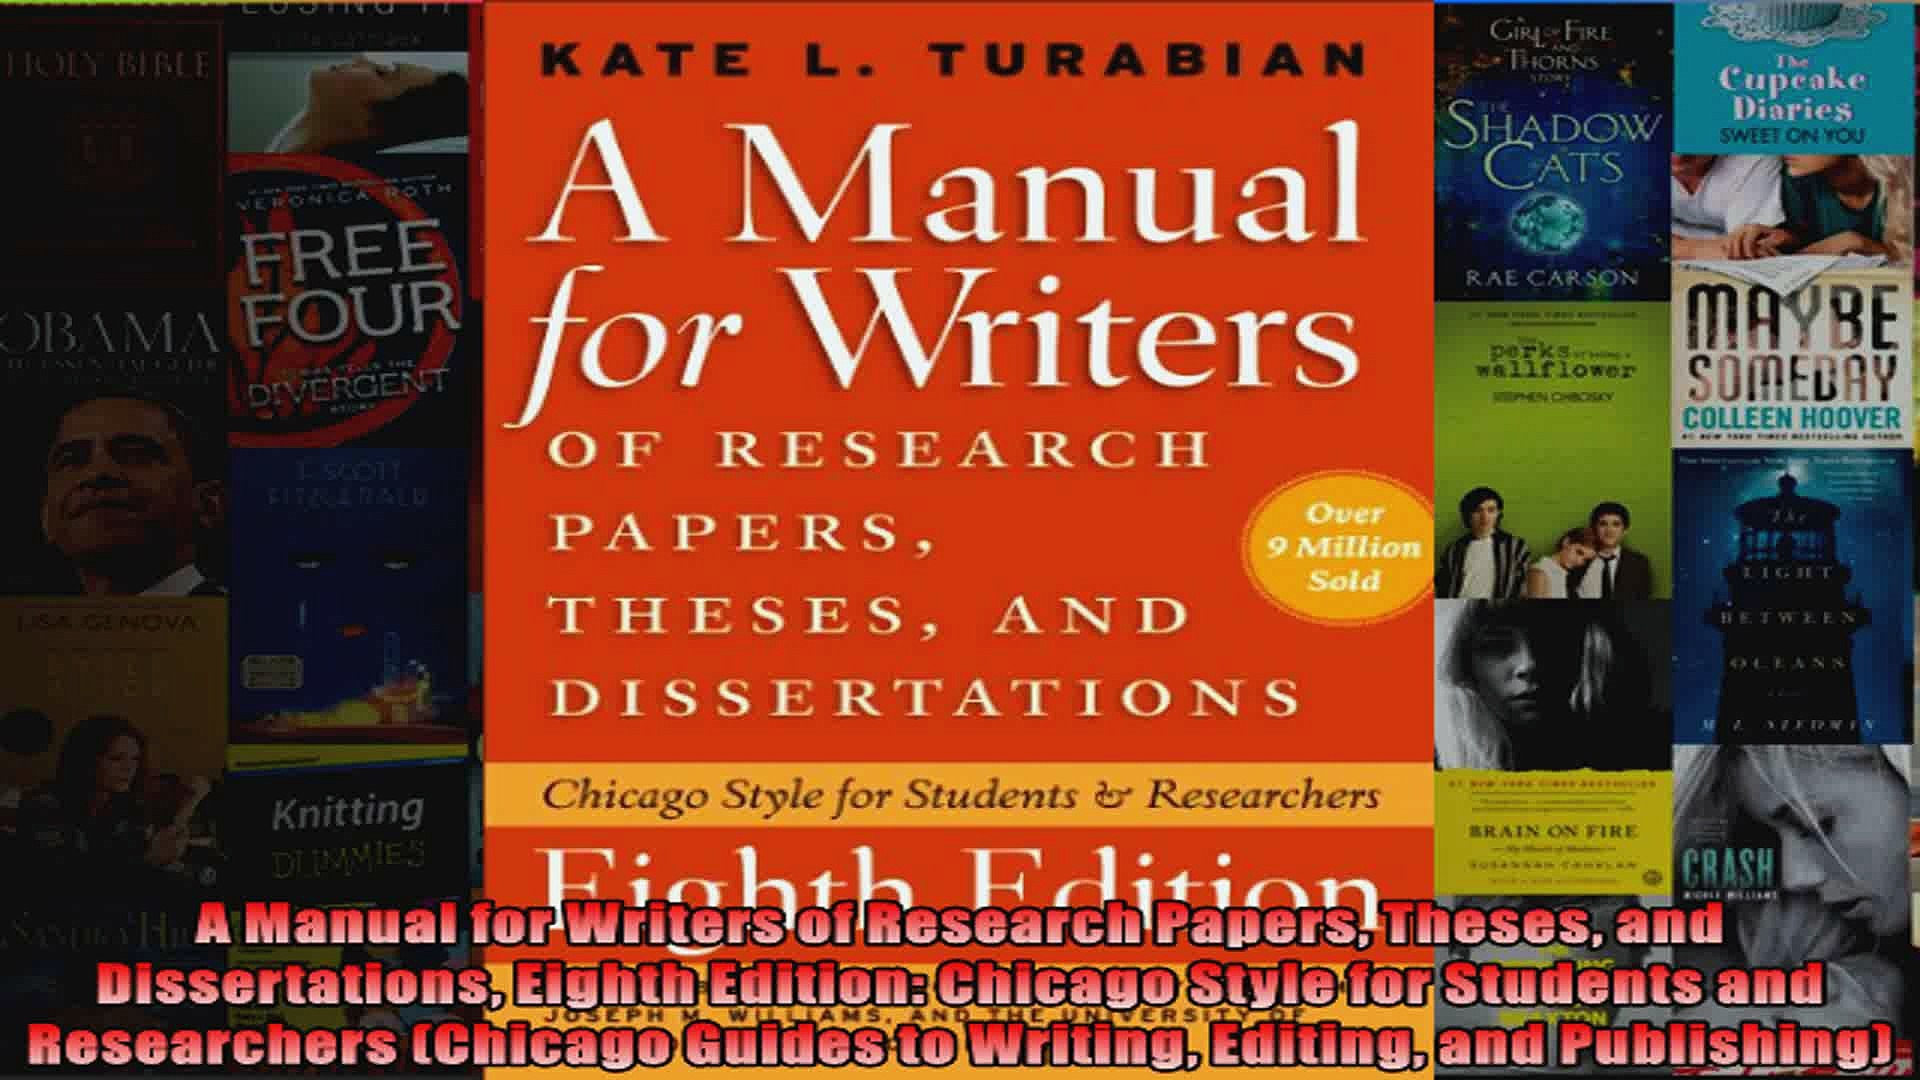 013 X1080 F2u Research Paper Manual For Writers Of Papers Theses And Dissertations Eighth Phenomenal A Edition Pdf Full